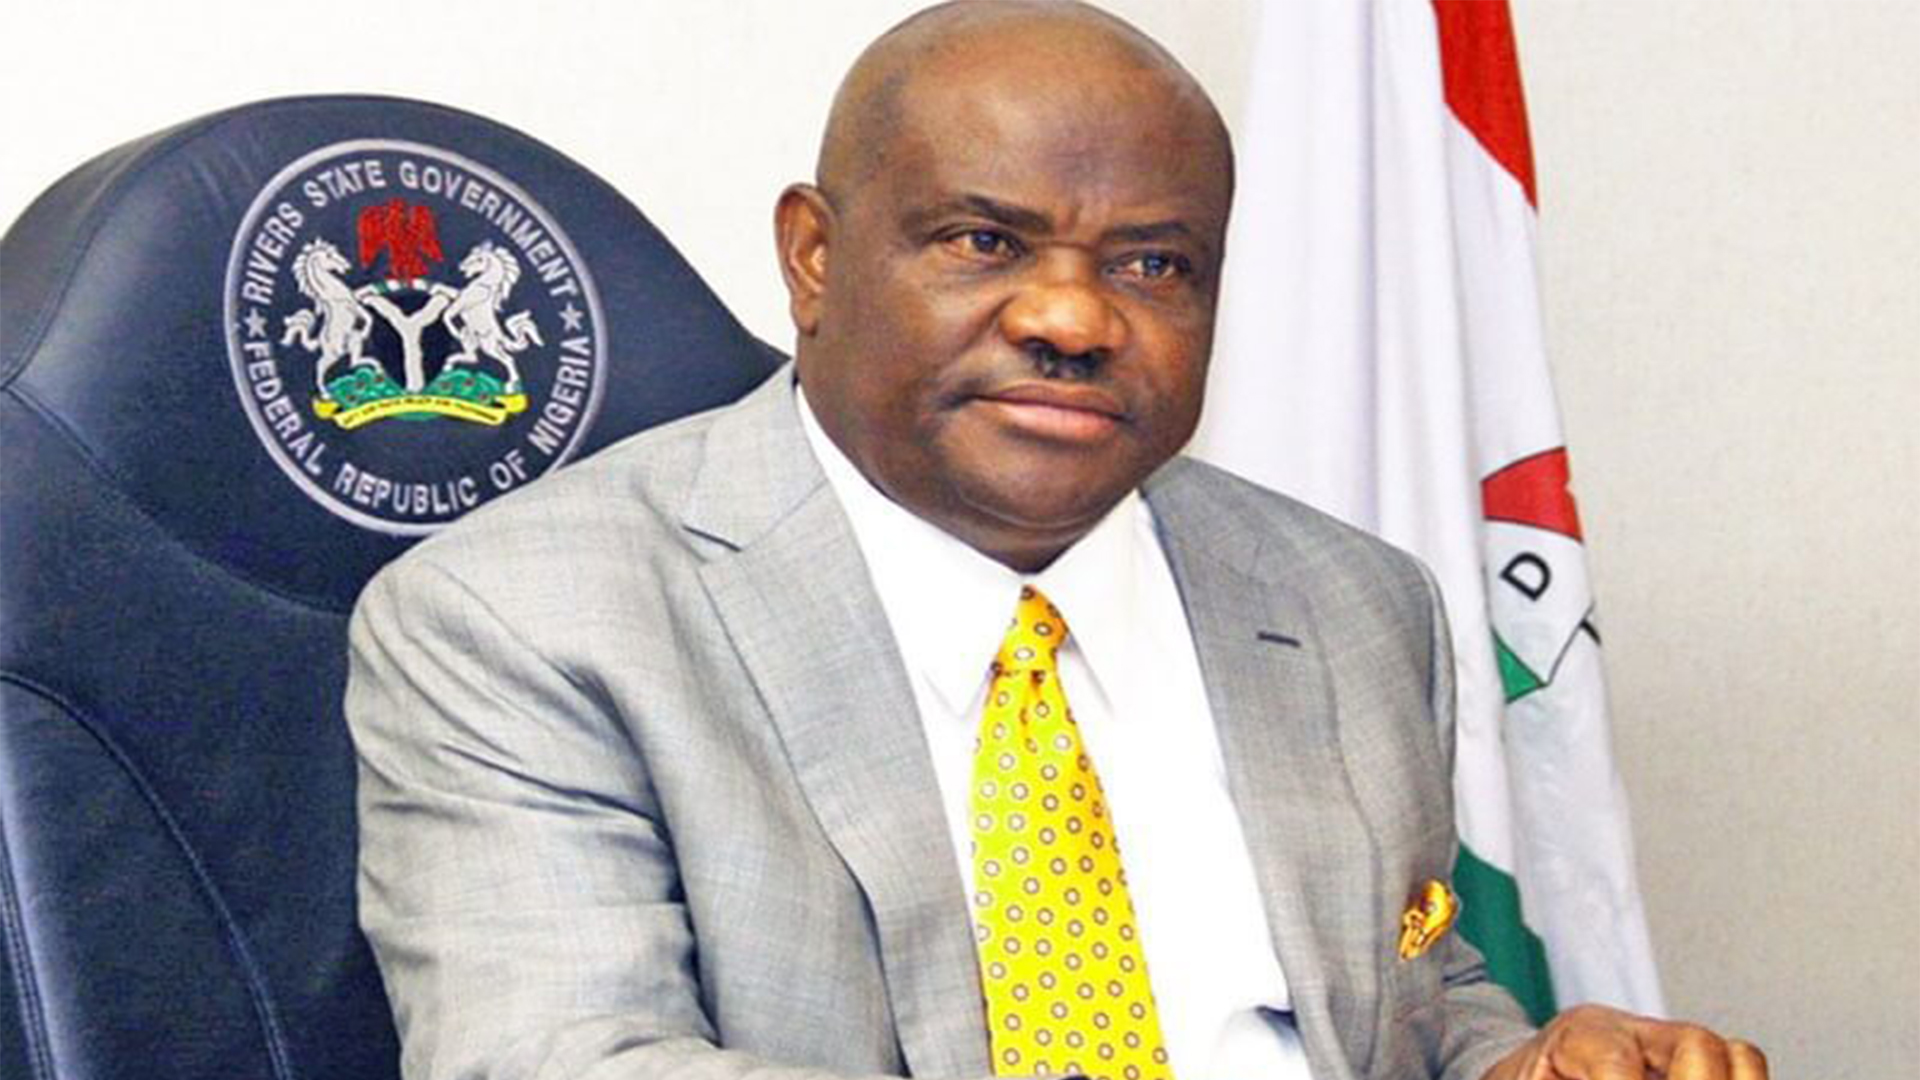 Insecurity in Ogoni: Wike deploys more security